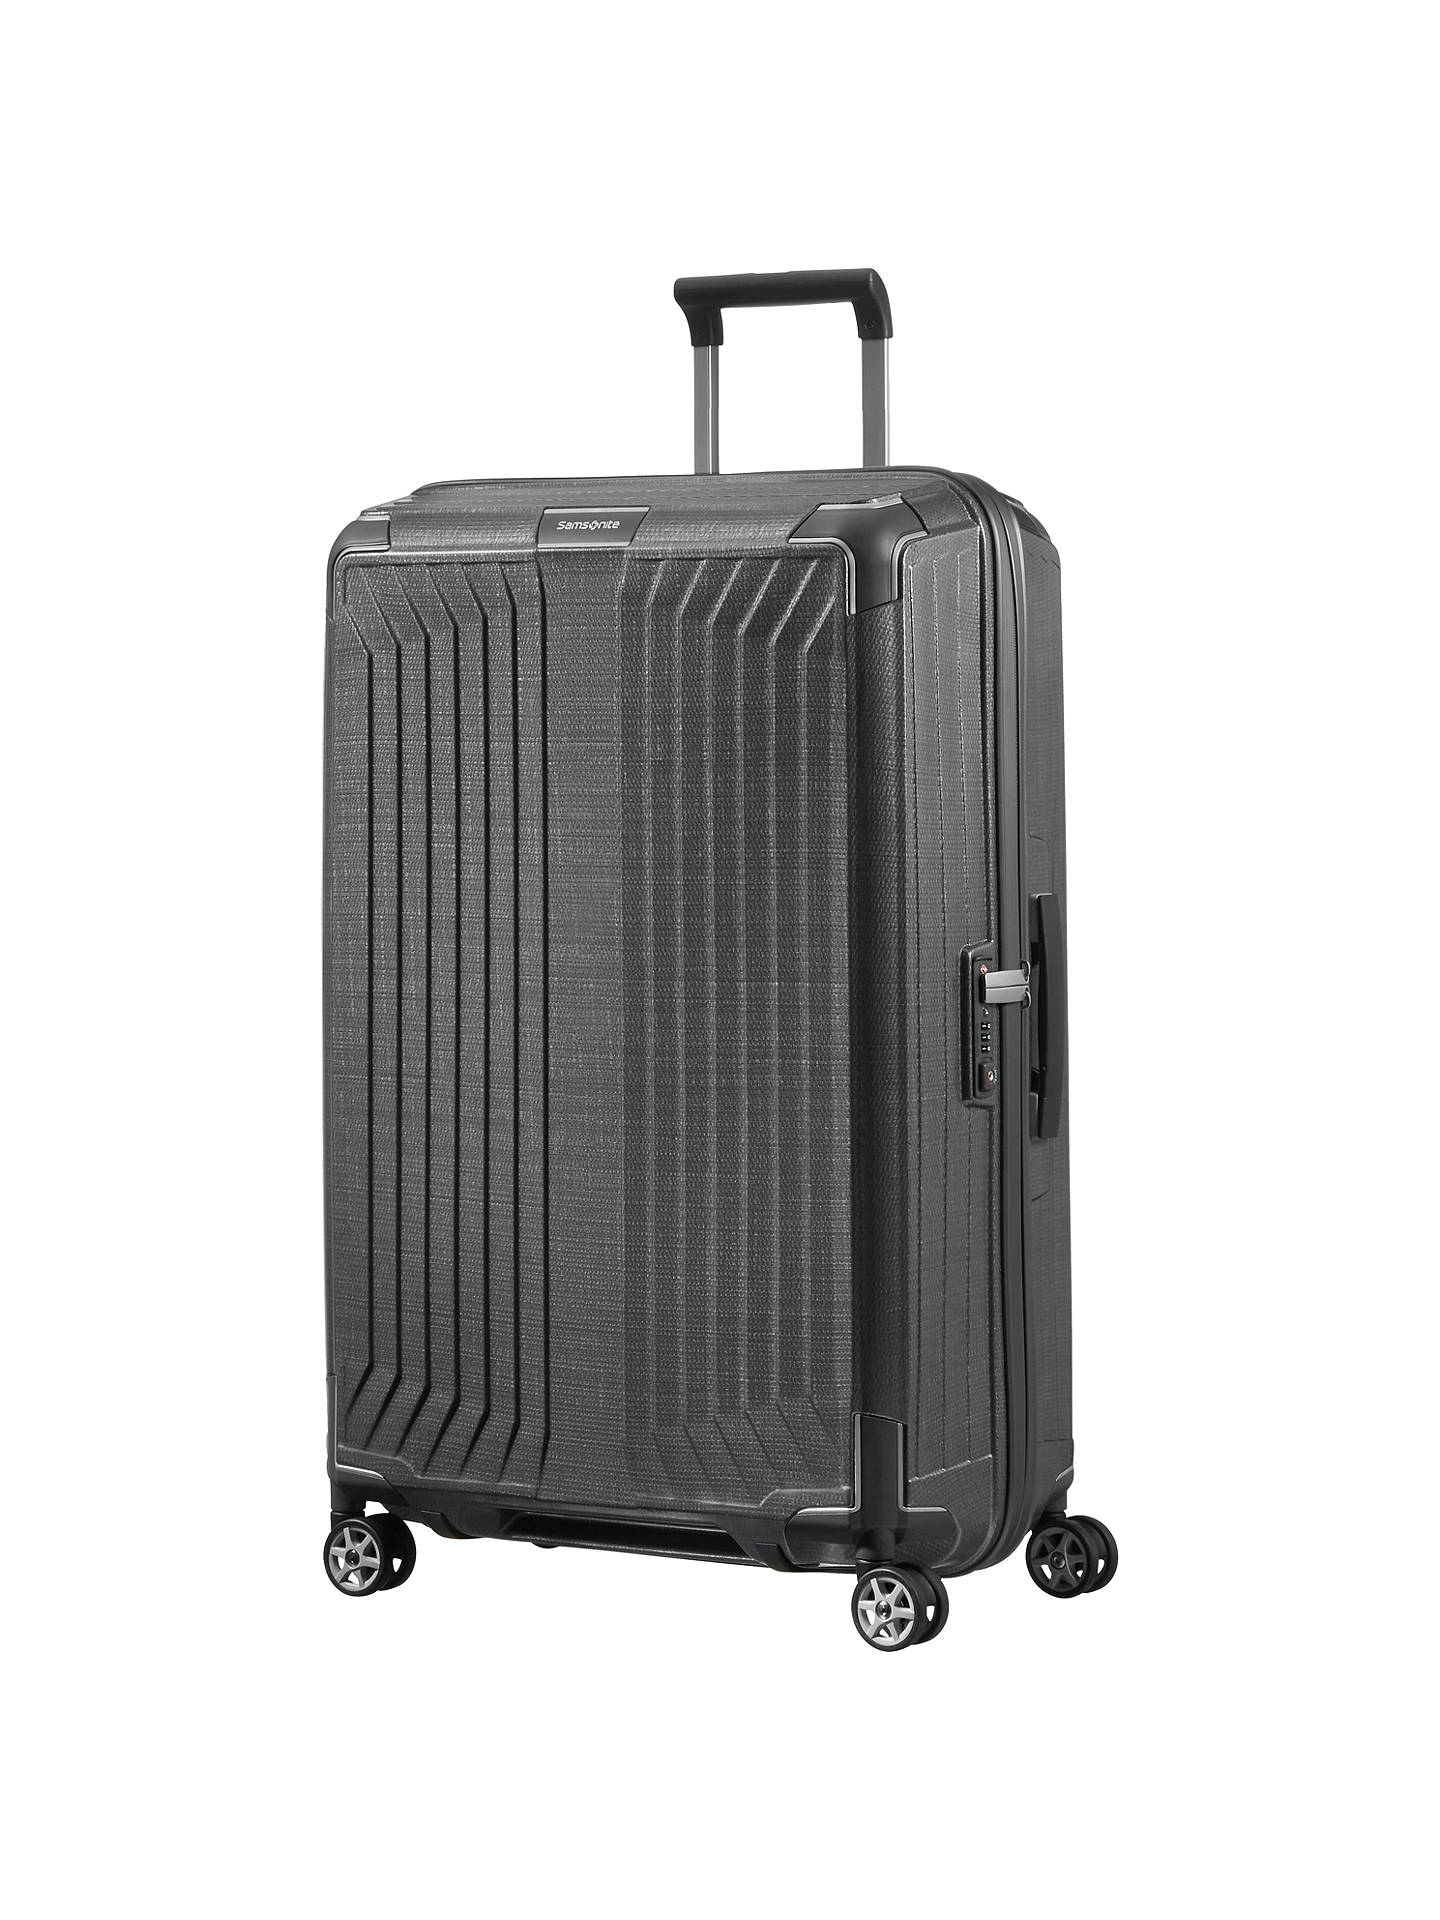 samsonite lite box 75cm 4 spinner wheel suitcase at john. Black Bedroom Furniture Sets. Home Design Ideas